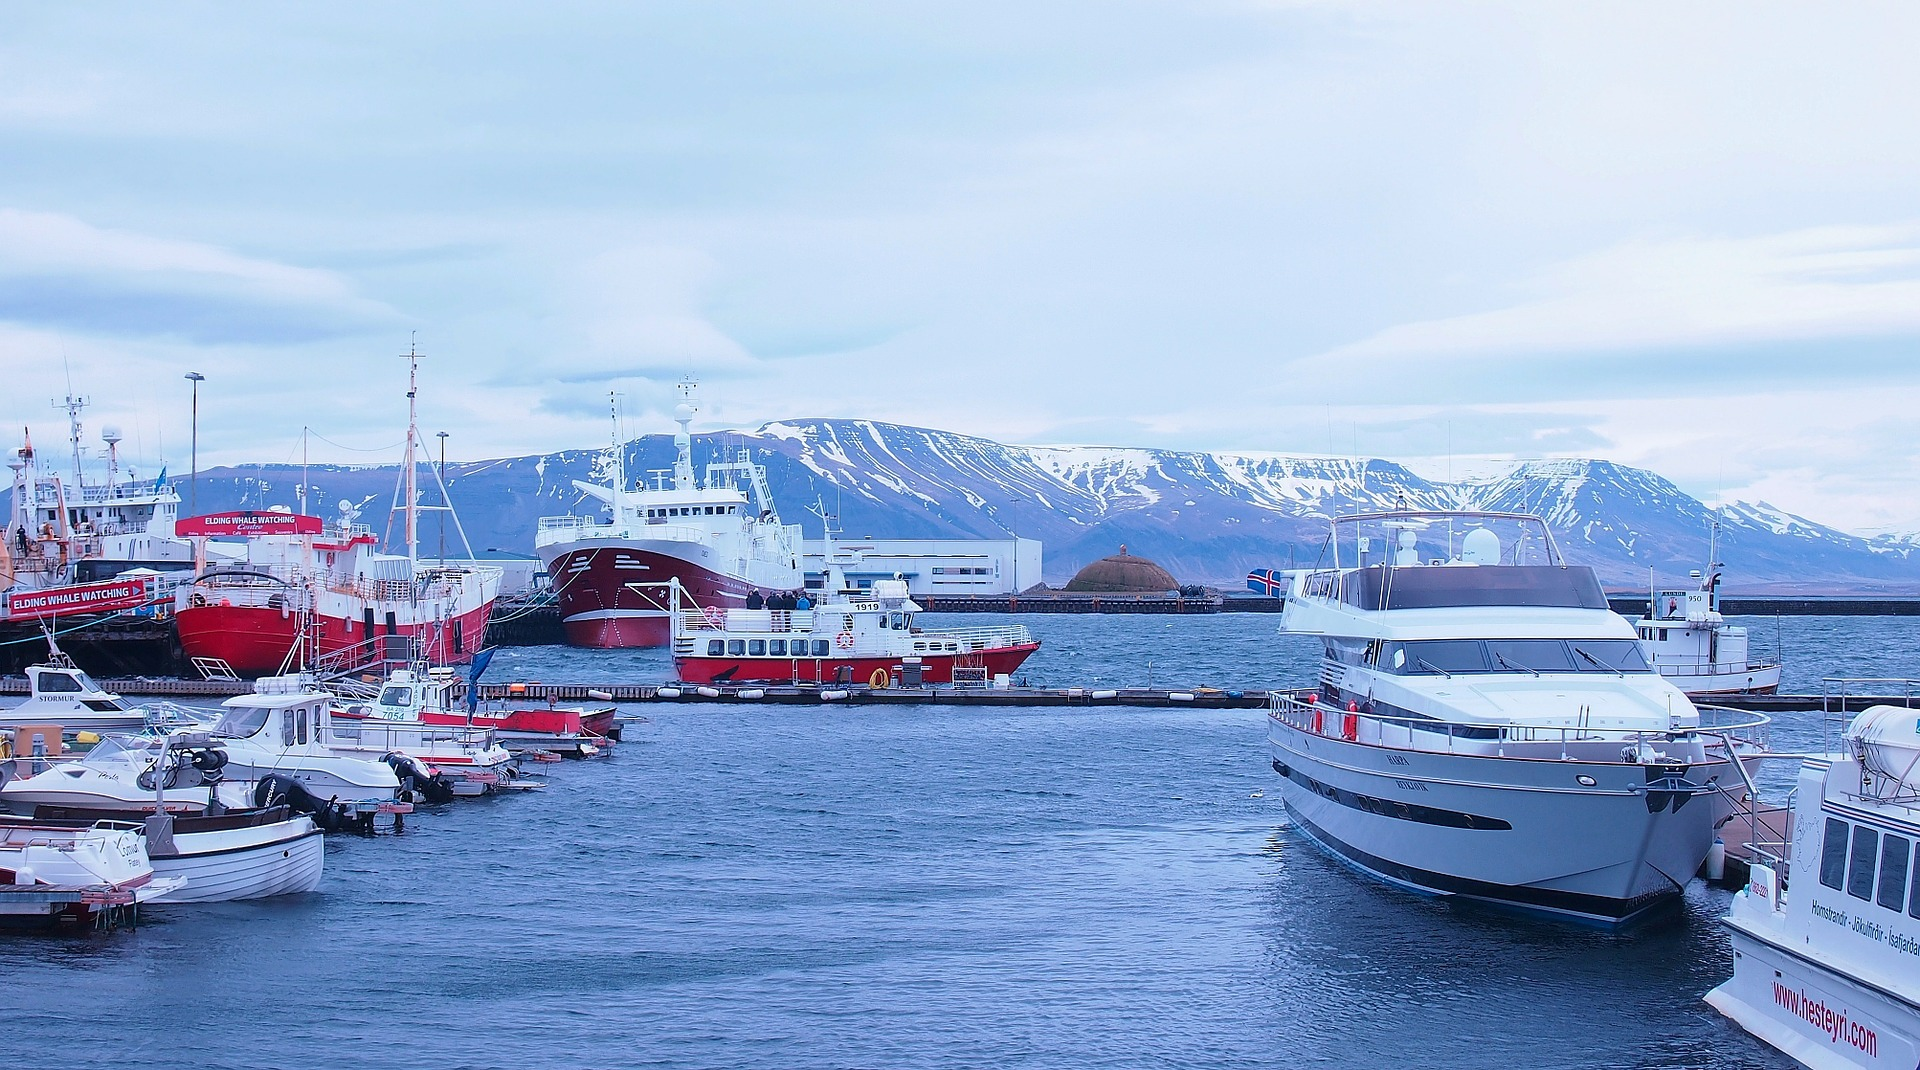 Reykjavik harbor, water body, boats, docks and mountains on the background